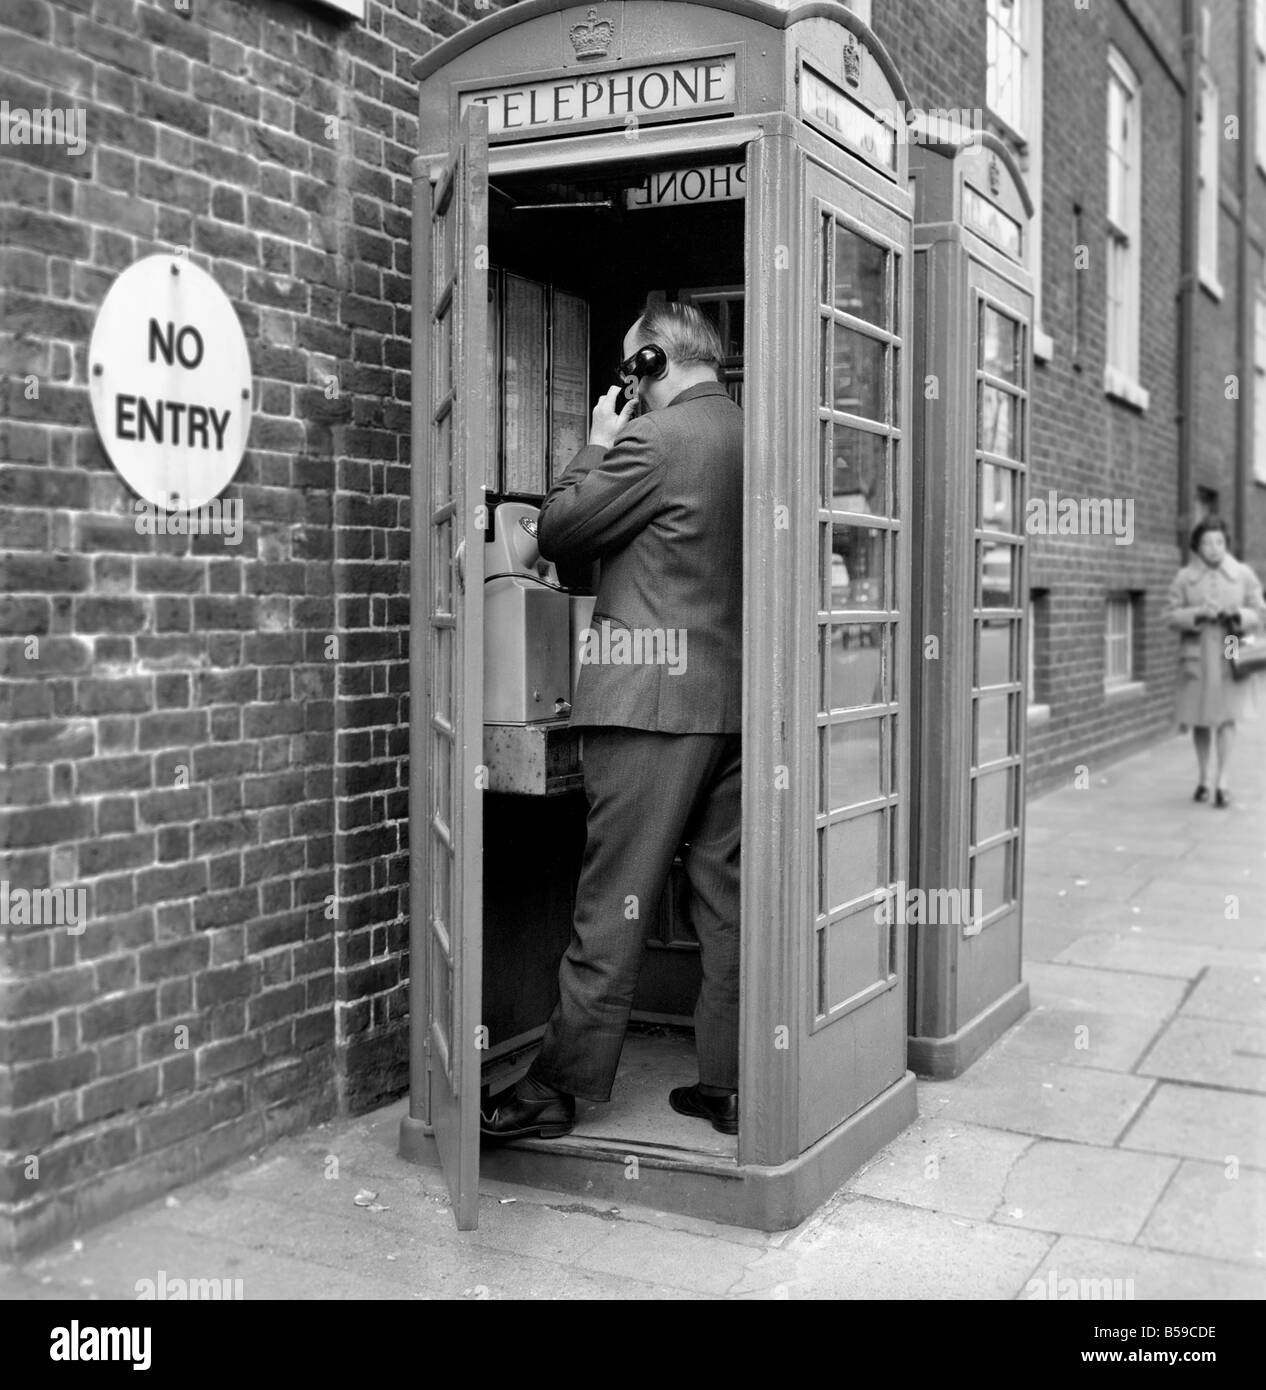 Man using a telephone box. The red telephone box was designed by Sir Giles Gilbert Scott, and up until the early - Stock Image